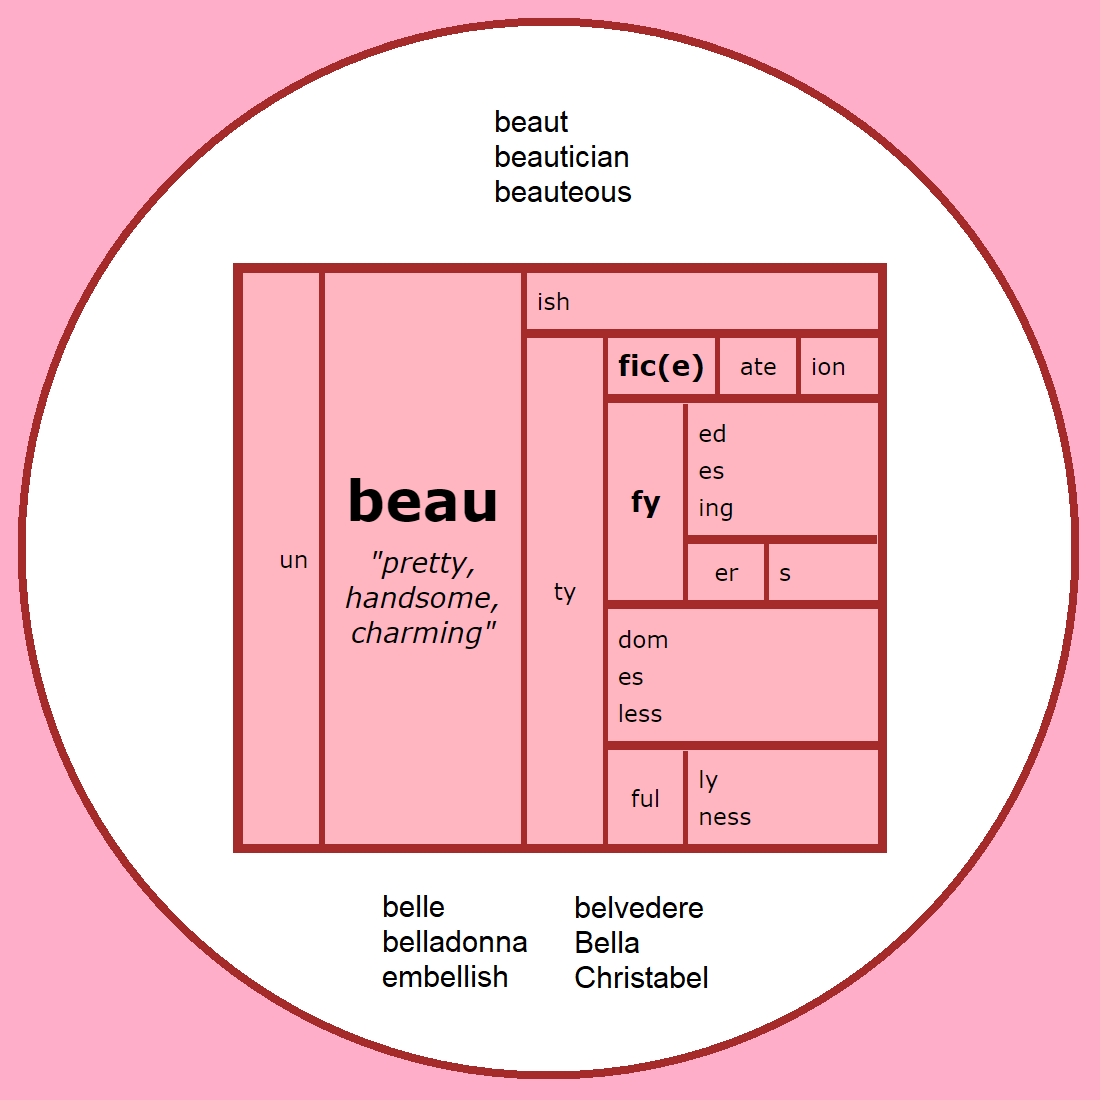 Word Matrix: Beau